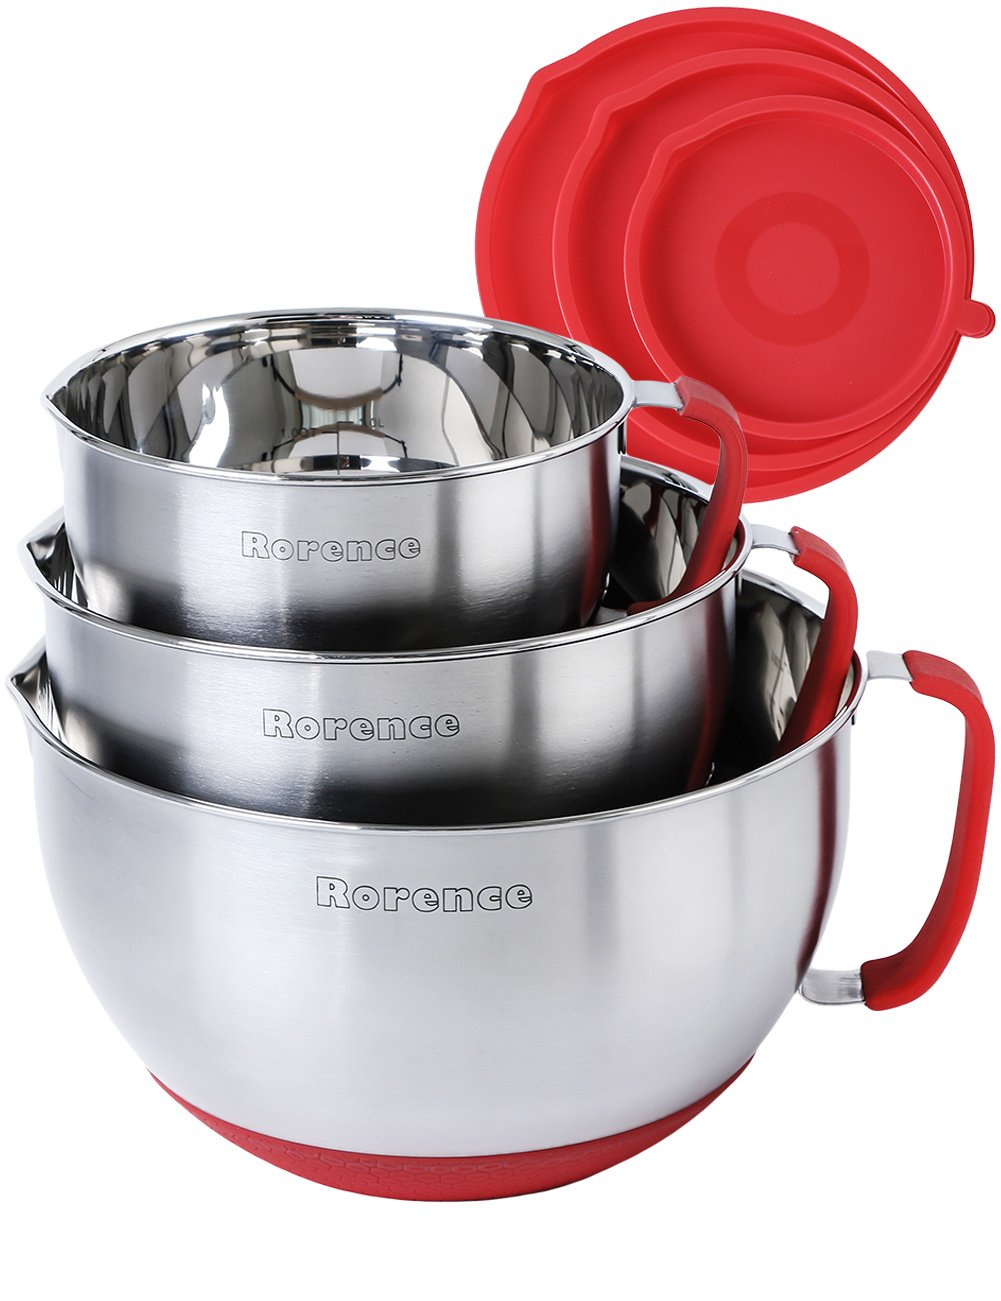 Rorence Stainless Steel Non-Slip Mixing Bowls With Pour Spout, Handle and Lid, Nesting Set of 3, Red